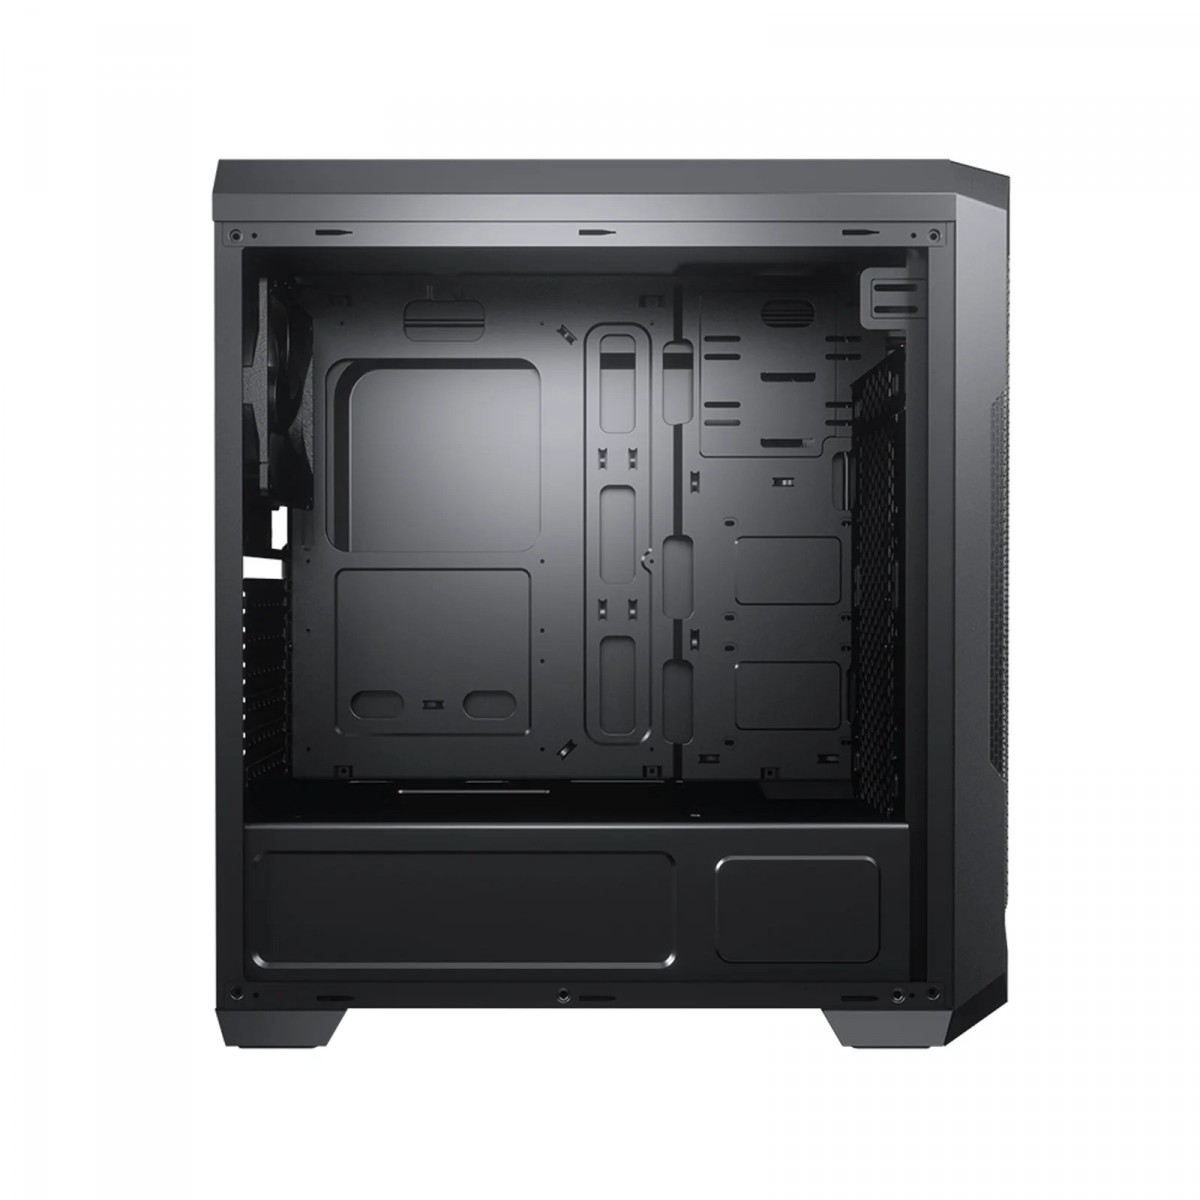 Gabinete Gamer Cougar, MX331 Mesh, Mid-Tower, Black, 385NC20.0004, Sem Fonte, Com 1 Fan